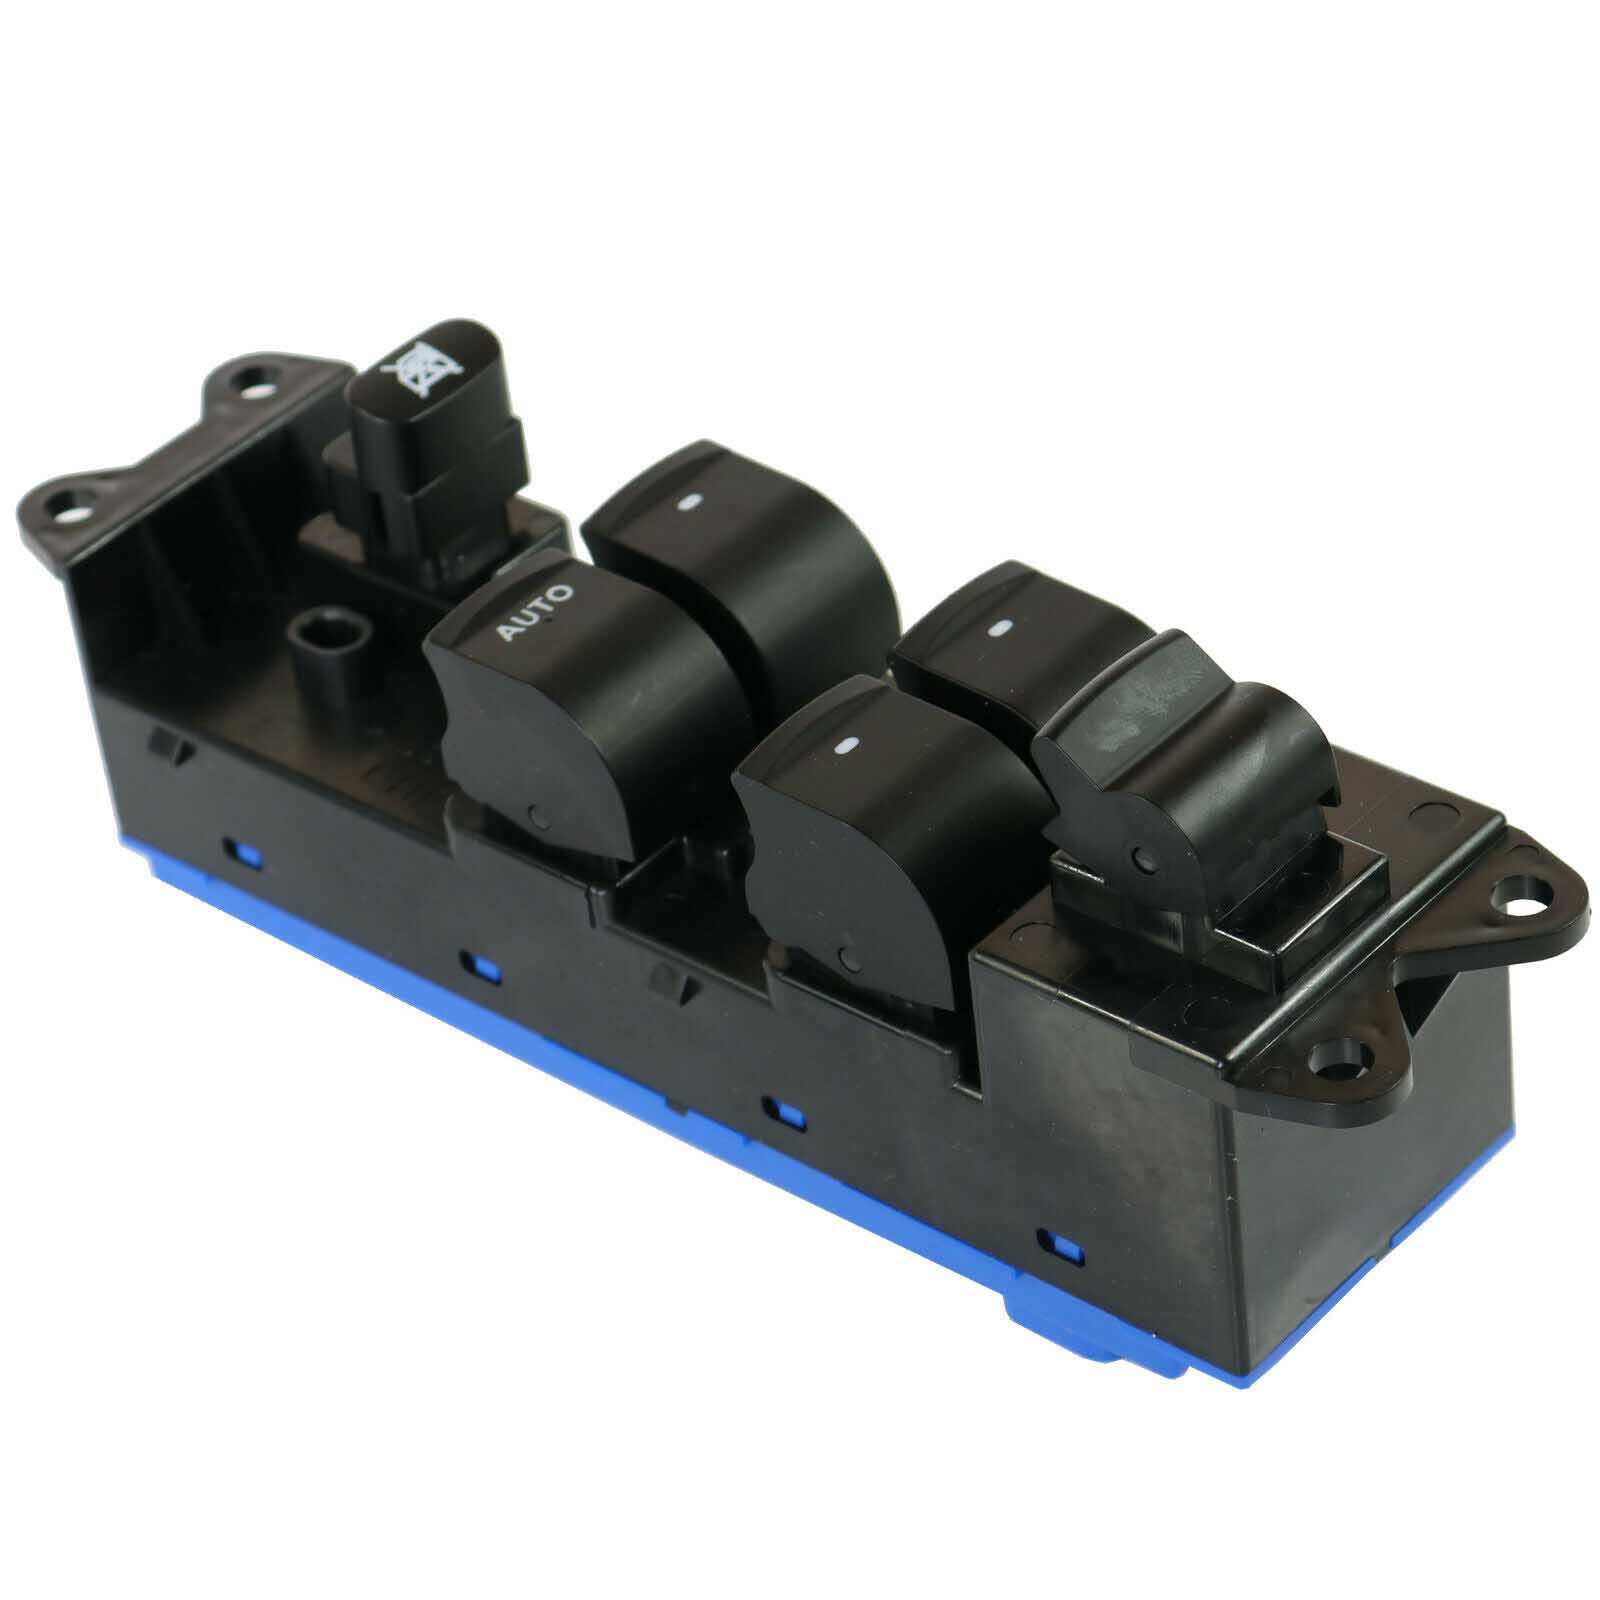 83071AG05B 12 Pins Eletctric Power Window Master Switch Front Left Driver For Subaru Outback Legacy XT 2005 2009 83071AG05B|Car Switches & Relays| |  - title=